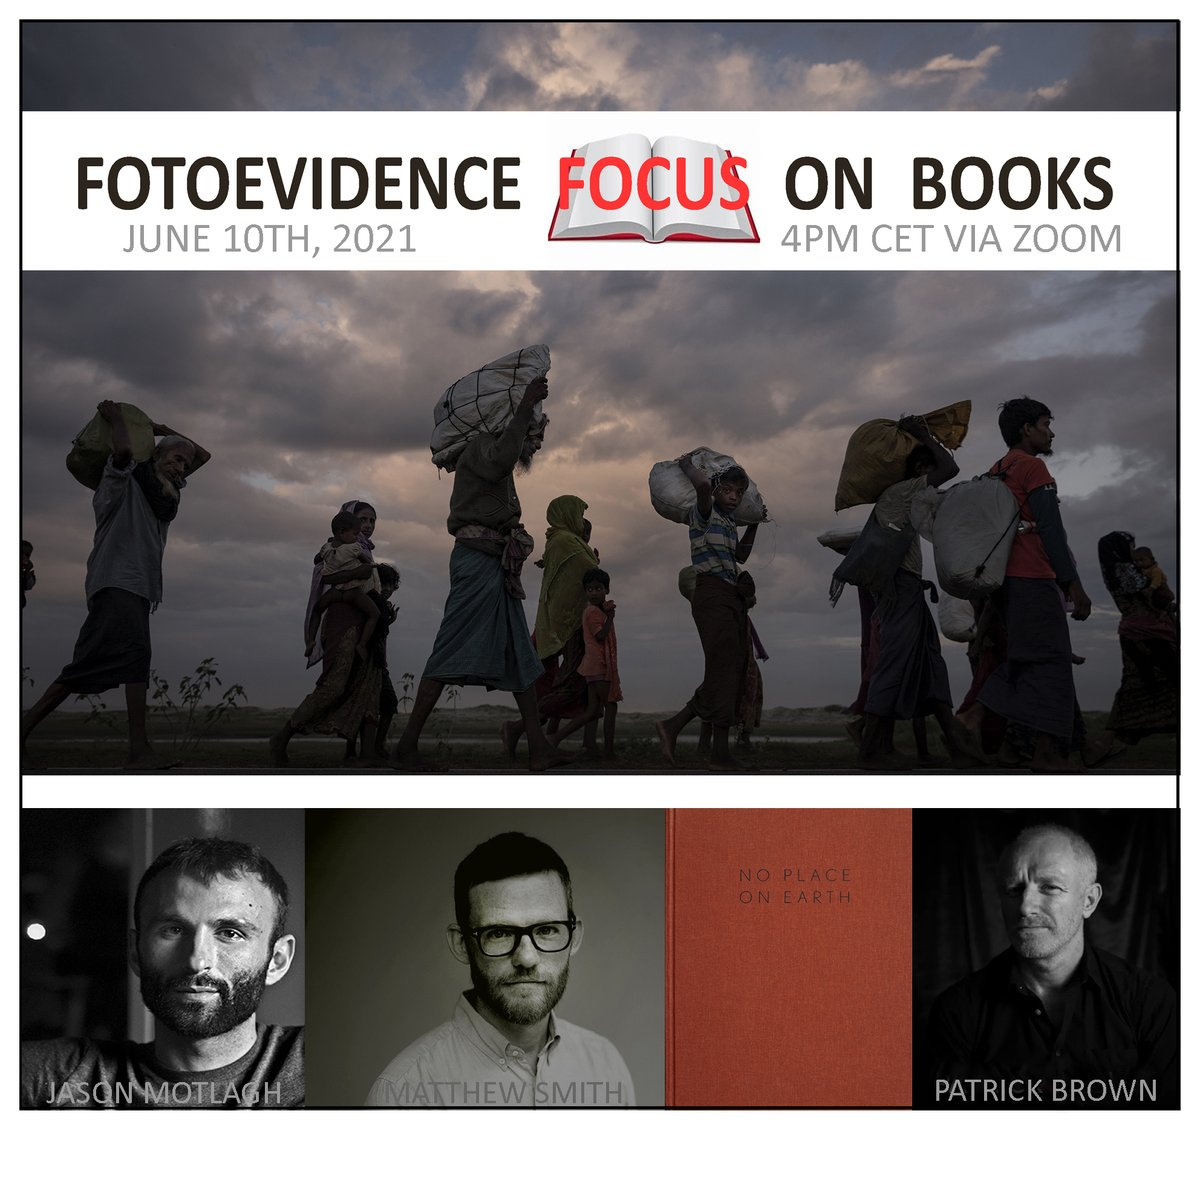 JUNE 10TH, 2021 AT4pm CET / 10am EST VIA ZOOM AND FACEBOOK LIVE  Our fifth FotoEvidence Focus on Books discussion, moderated by Jason Motlagh with Australian photographer Patrick Brown,  with his work No Place on Earth. Registration is free: https://t.co/rAhXydNFii... https://t.co/0hMa7TcBIm